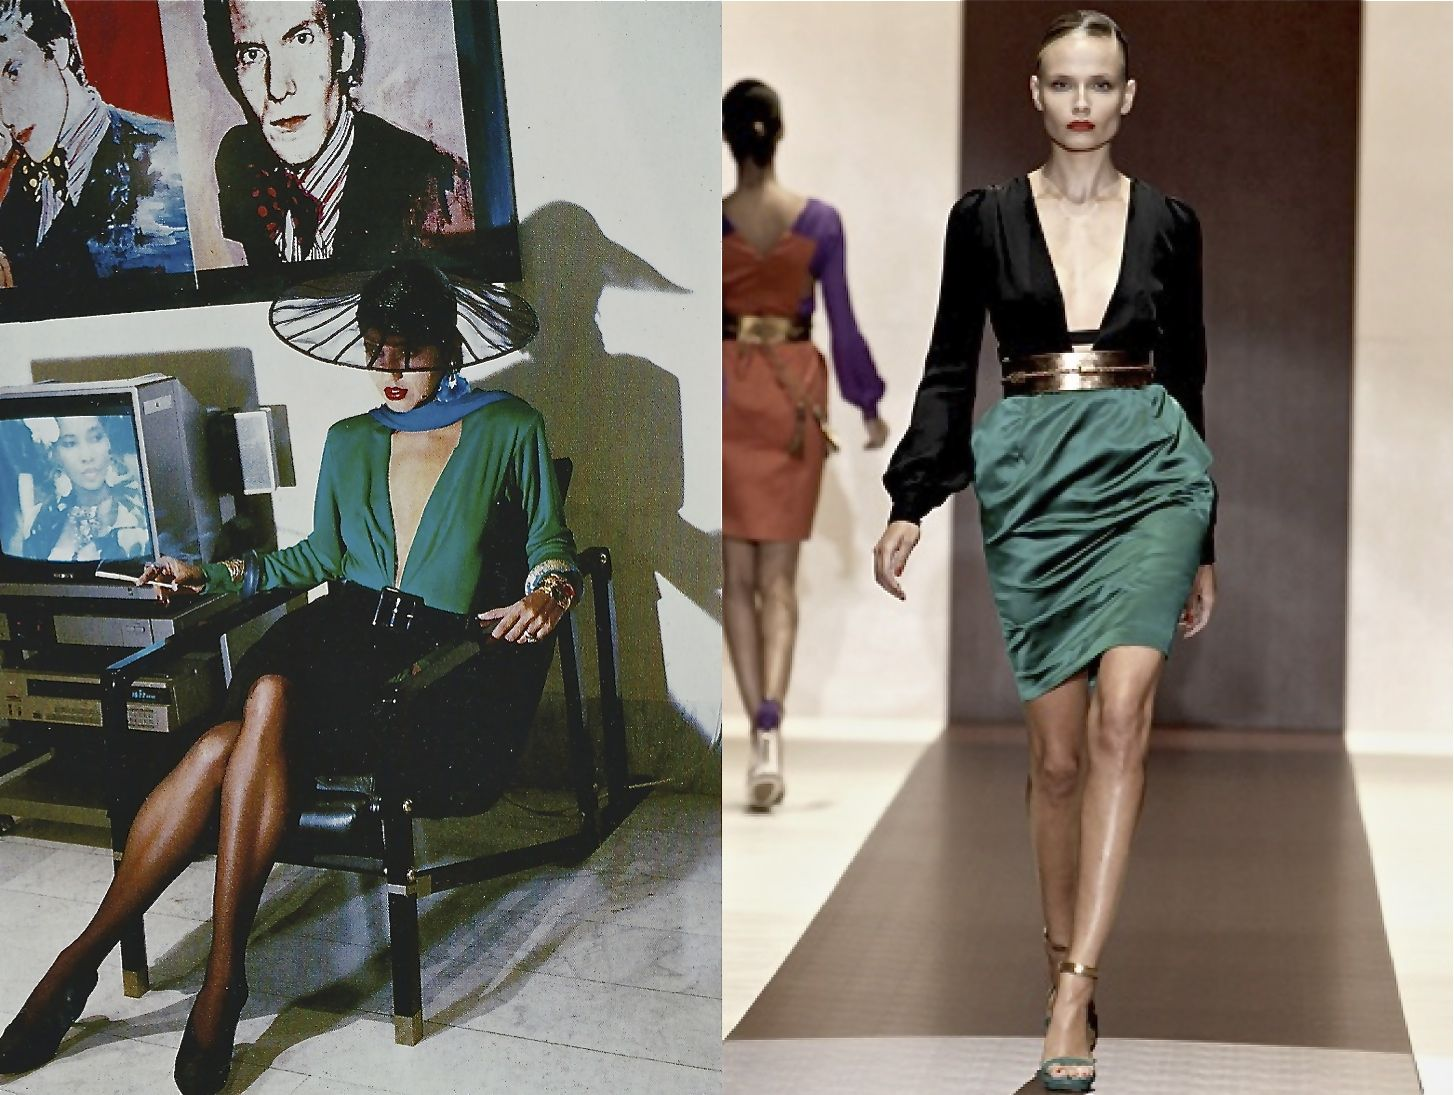 INTO THE FASHION: October 2010 YSL